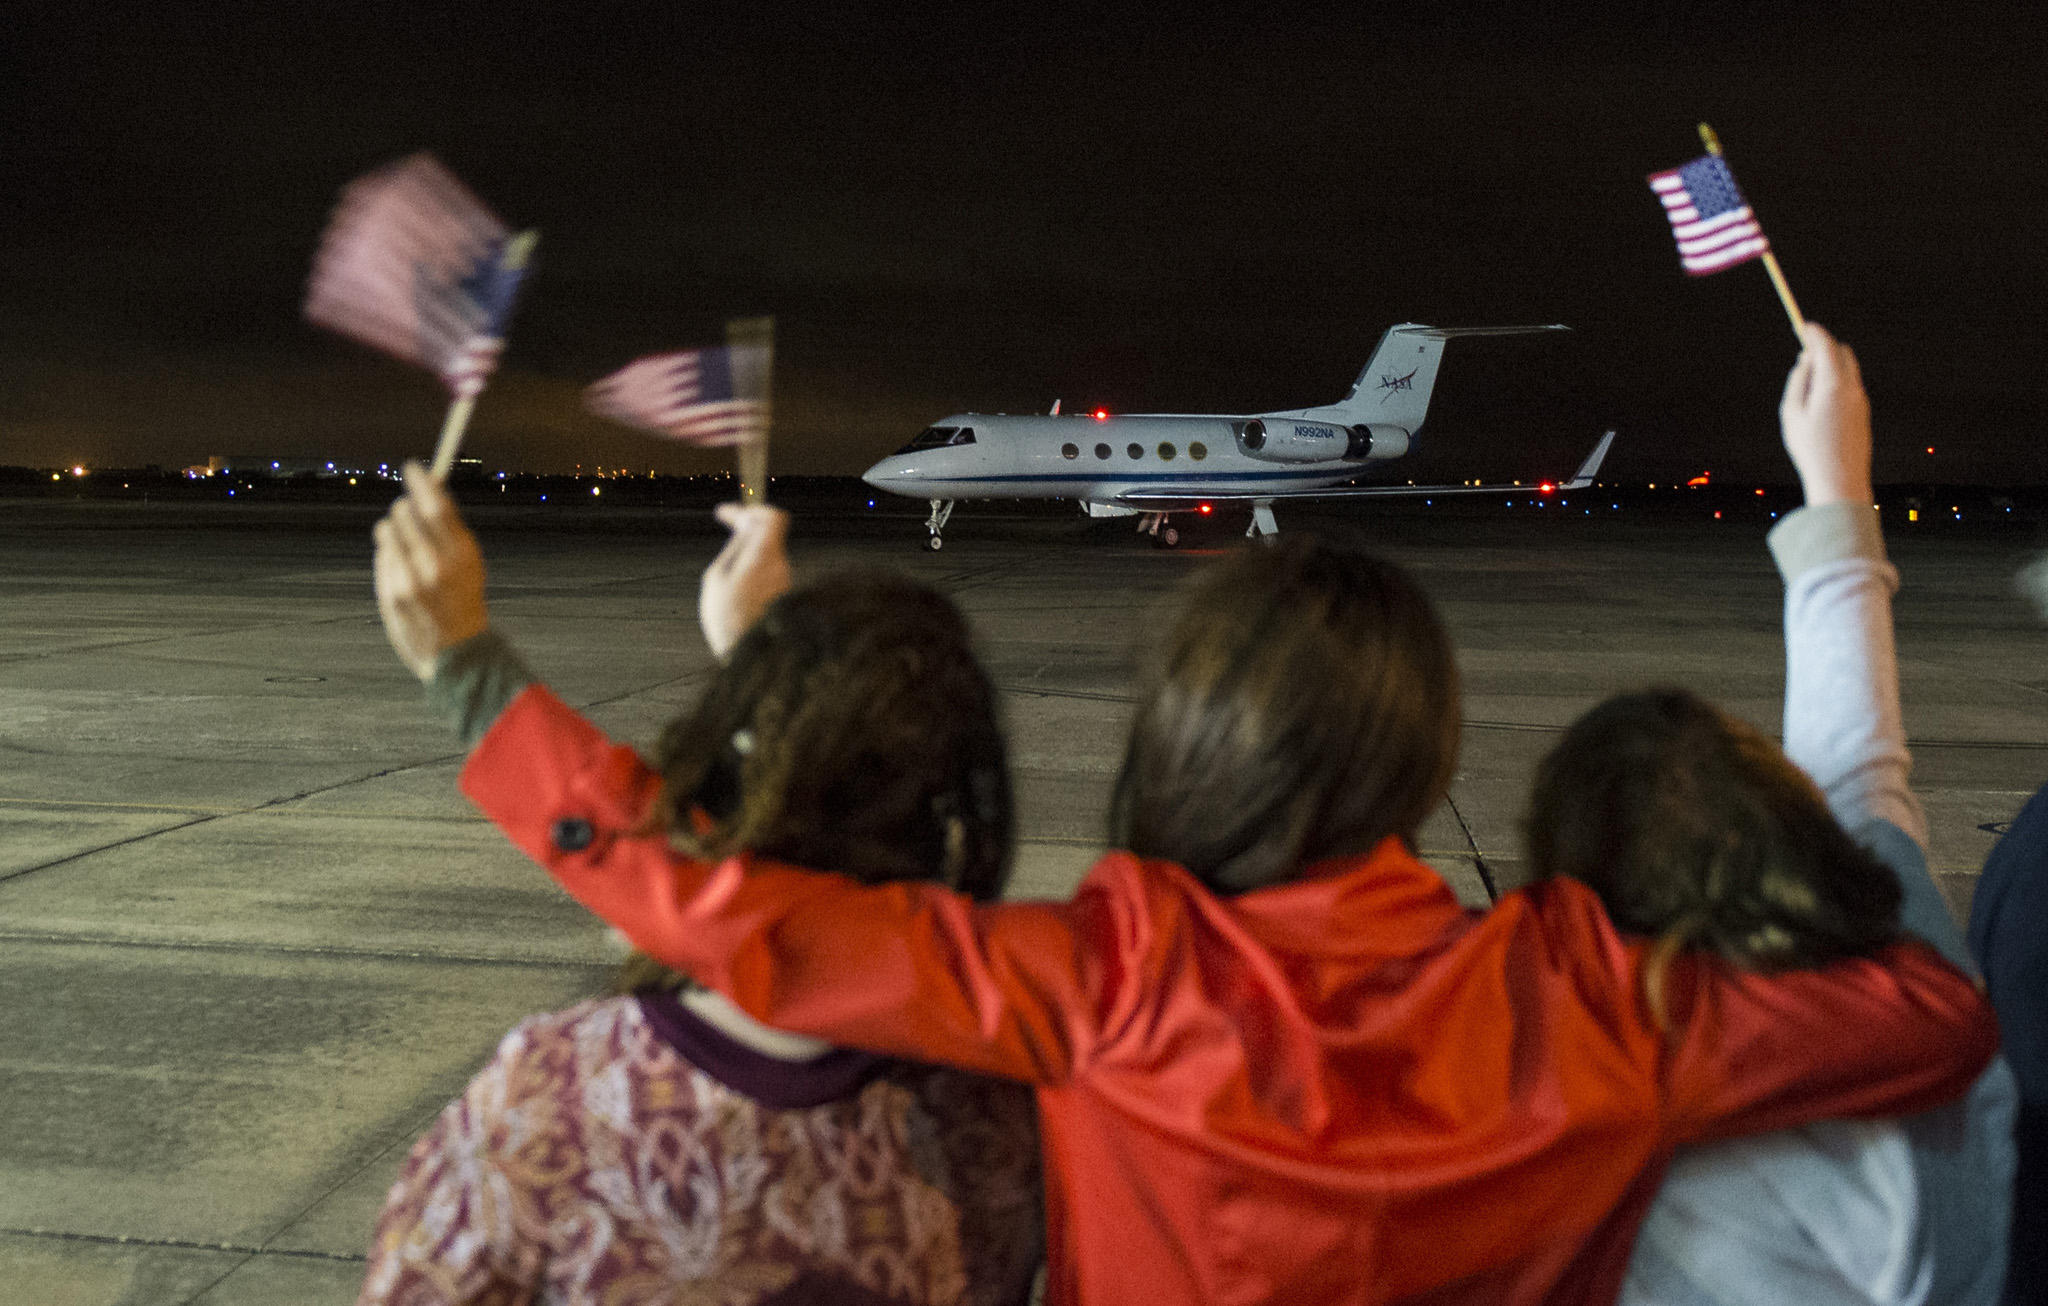 The plane carrying Expedition 46 Commander Scott Kelly of NASA is seen as it taxis after landing at Ellington Field after his return to Earth